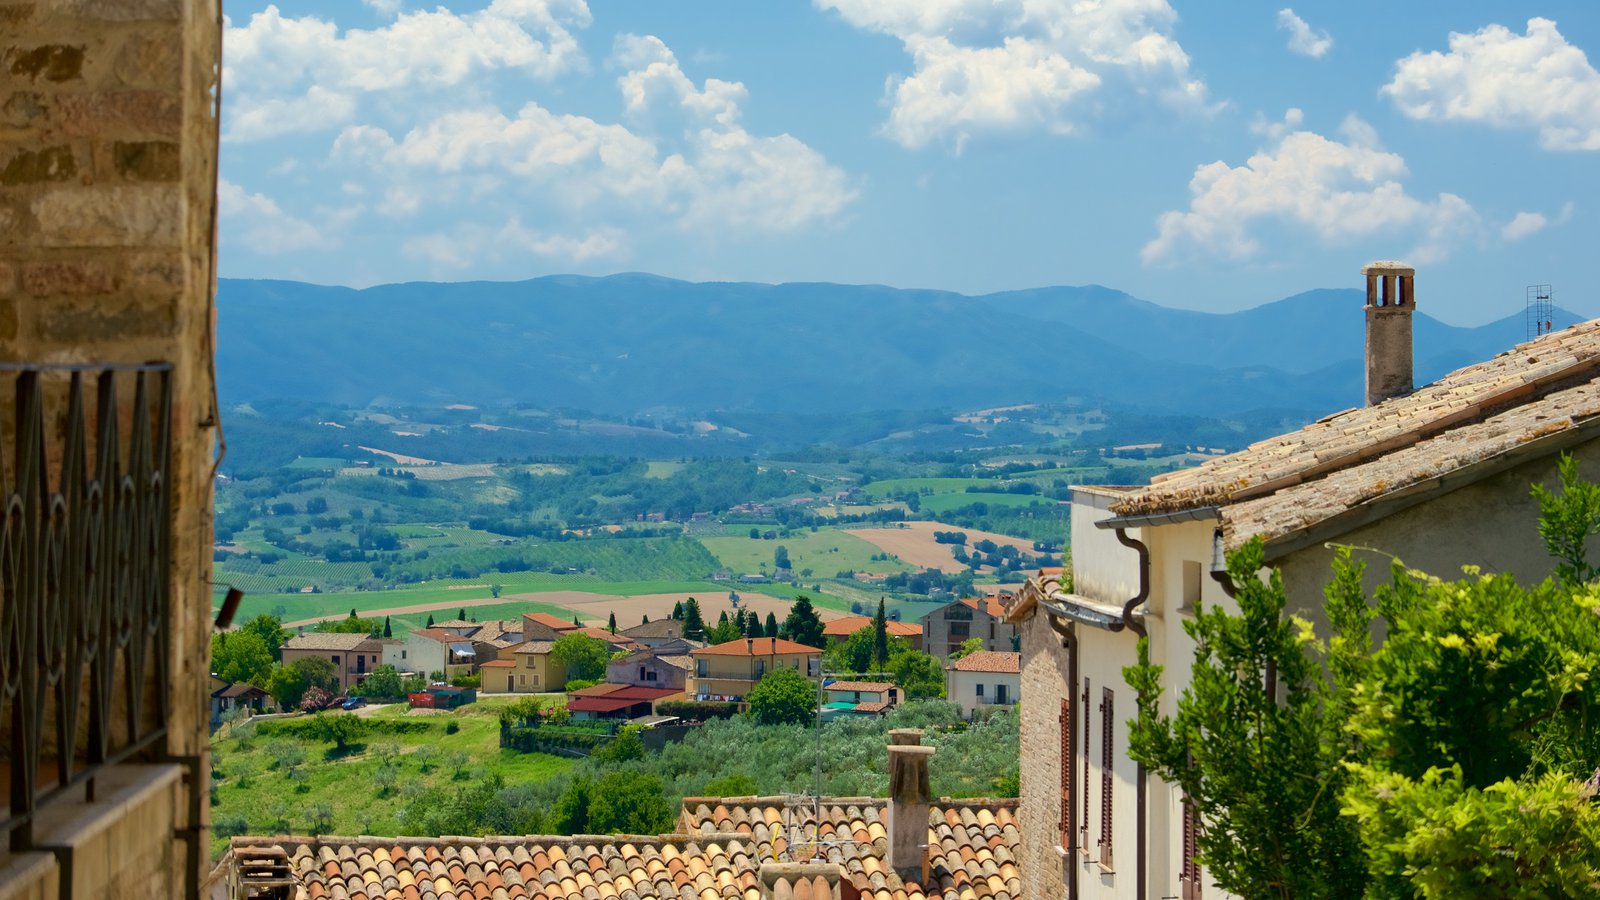 Montefalco showing landscape views and heritage architecture